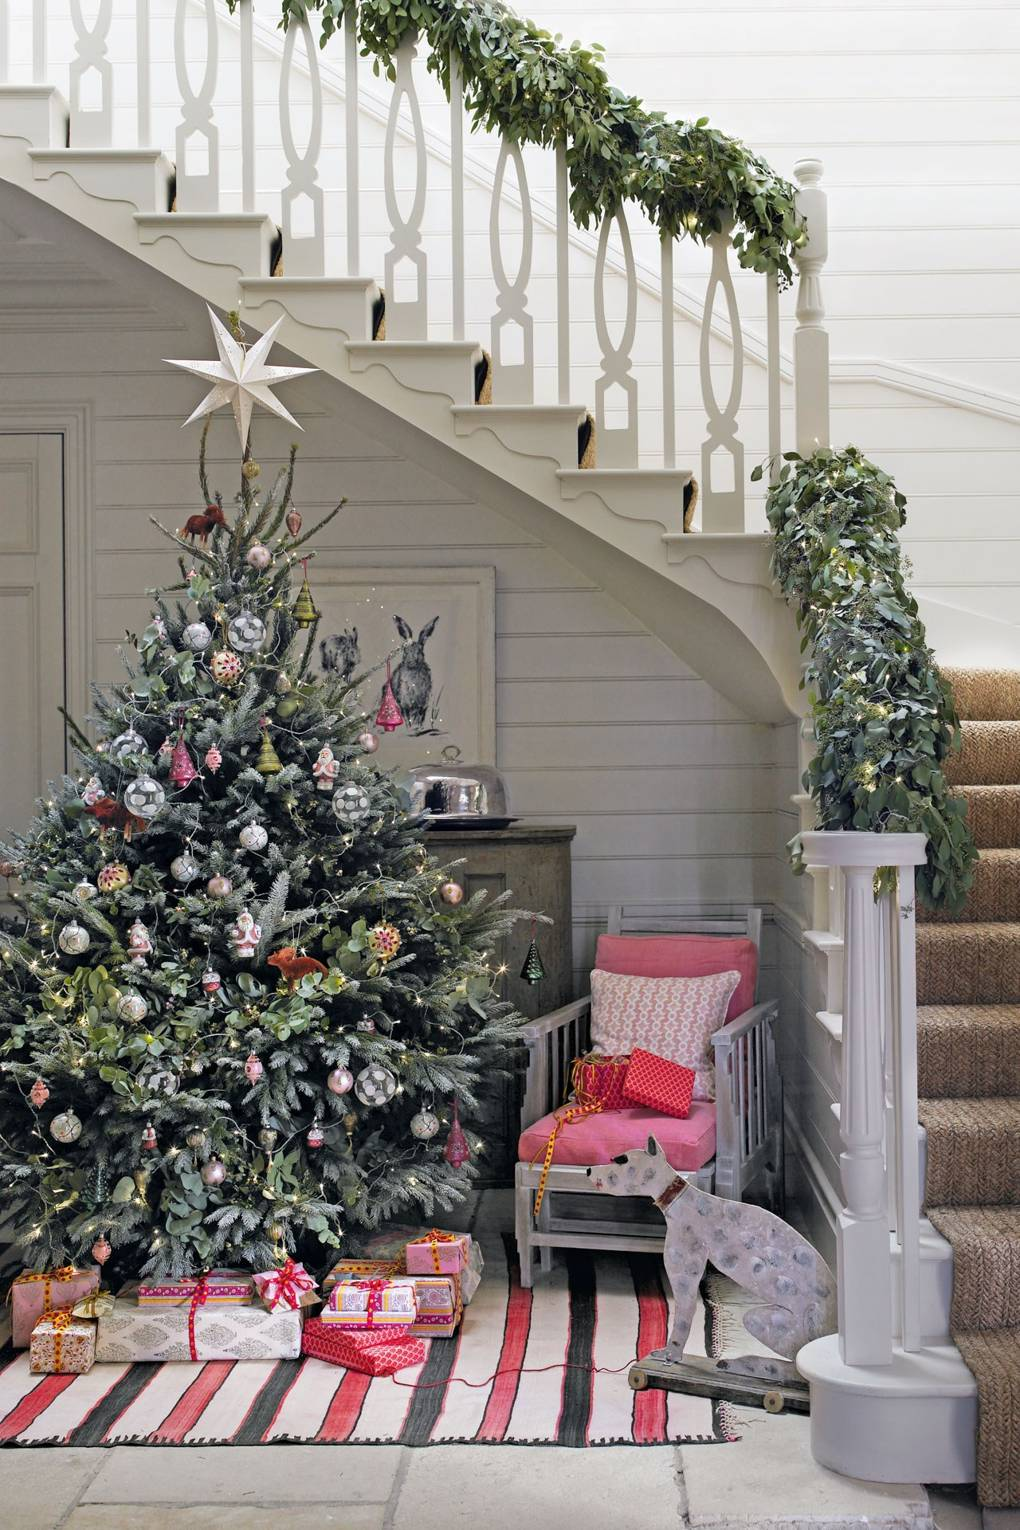 Christmas Decorating With Plants Foliage Holly Ivy Mistletoe